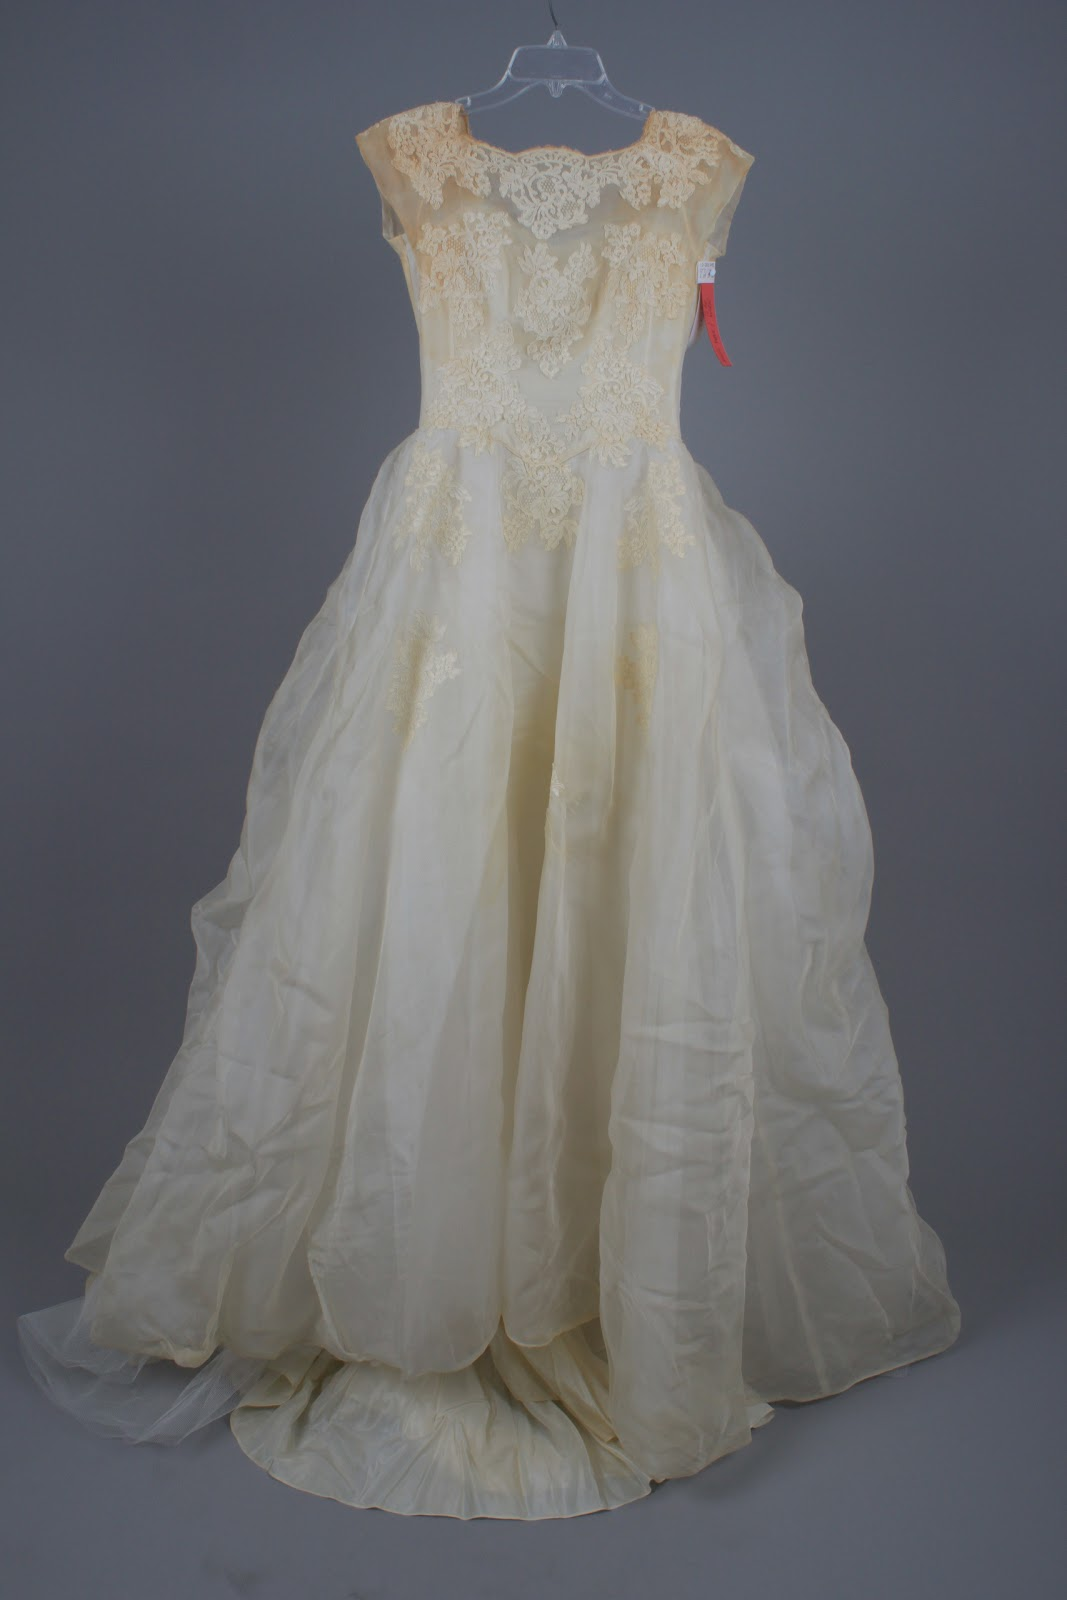 bridal gown cleaning & preservation: follow a 50-year-old